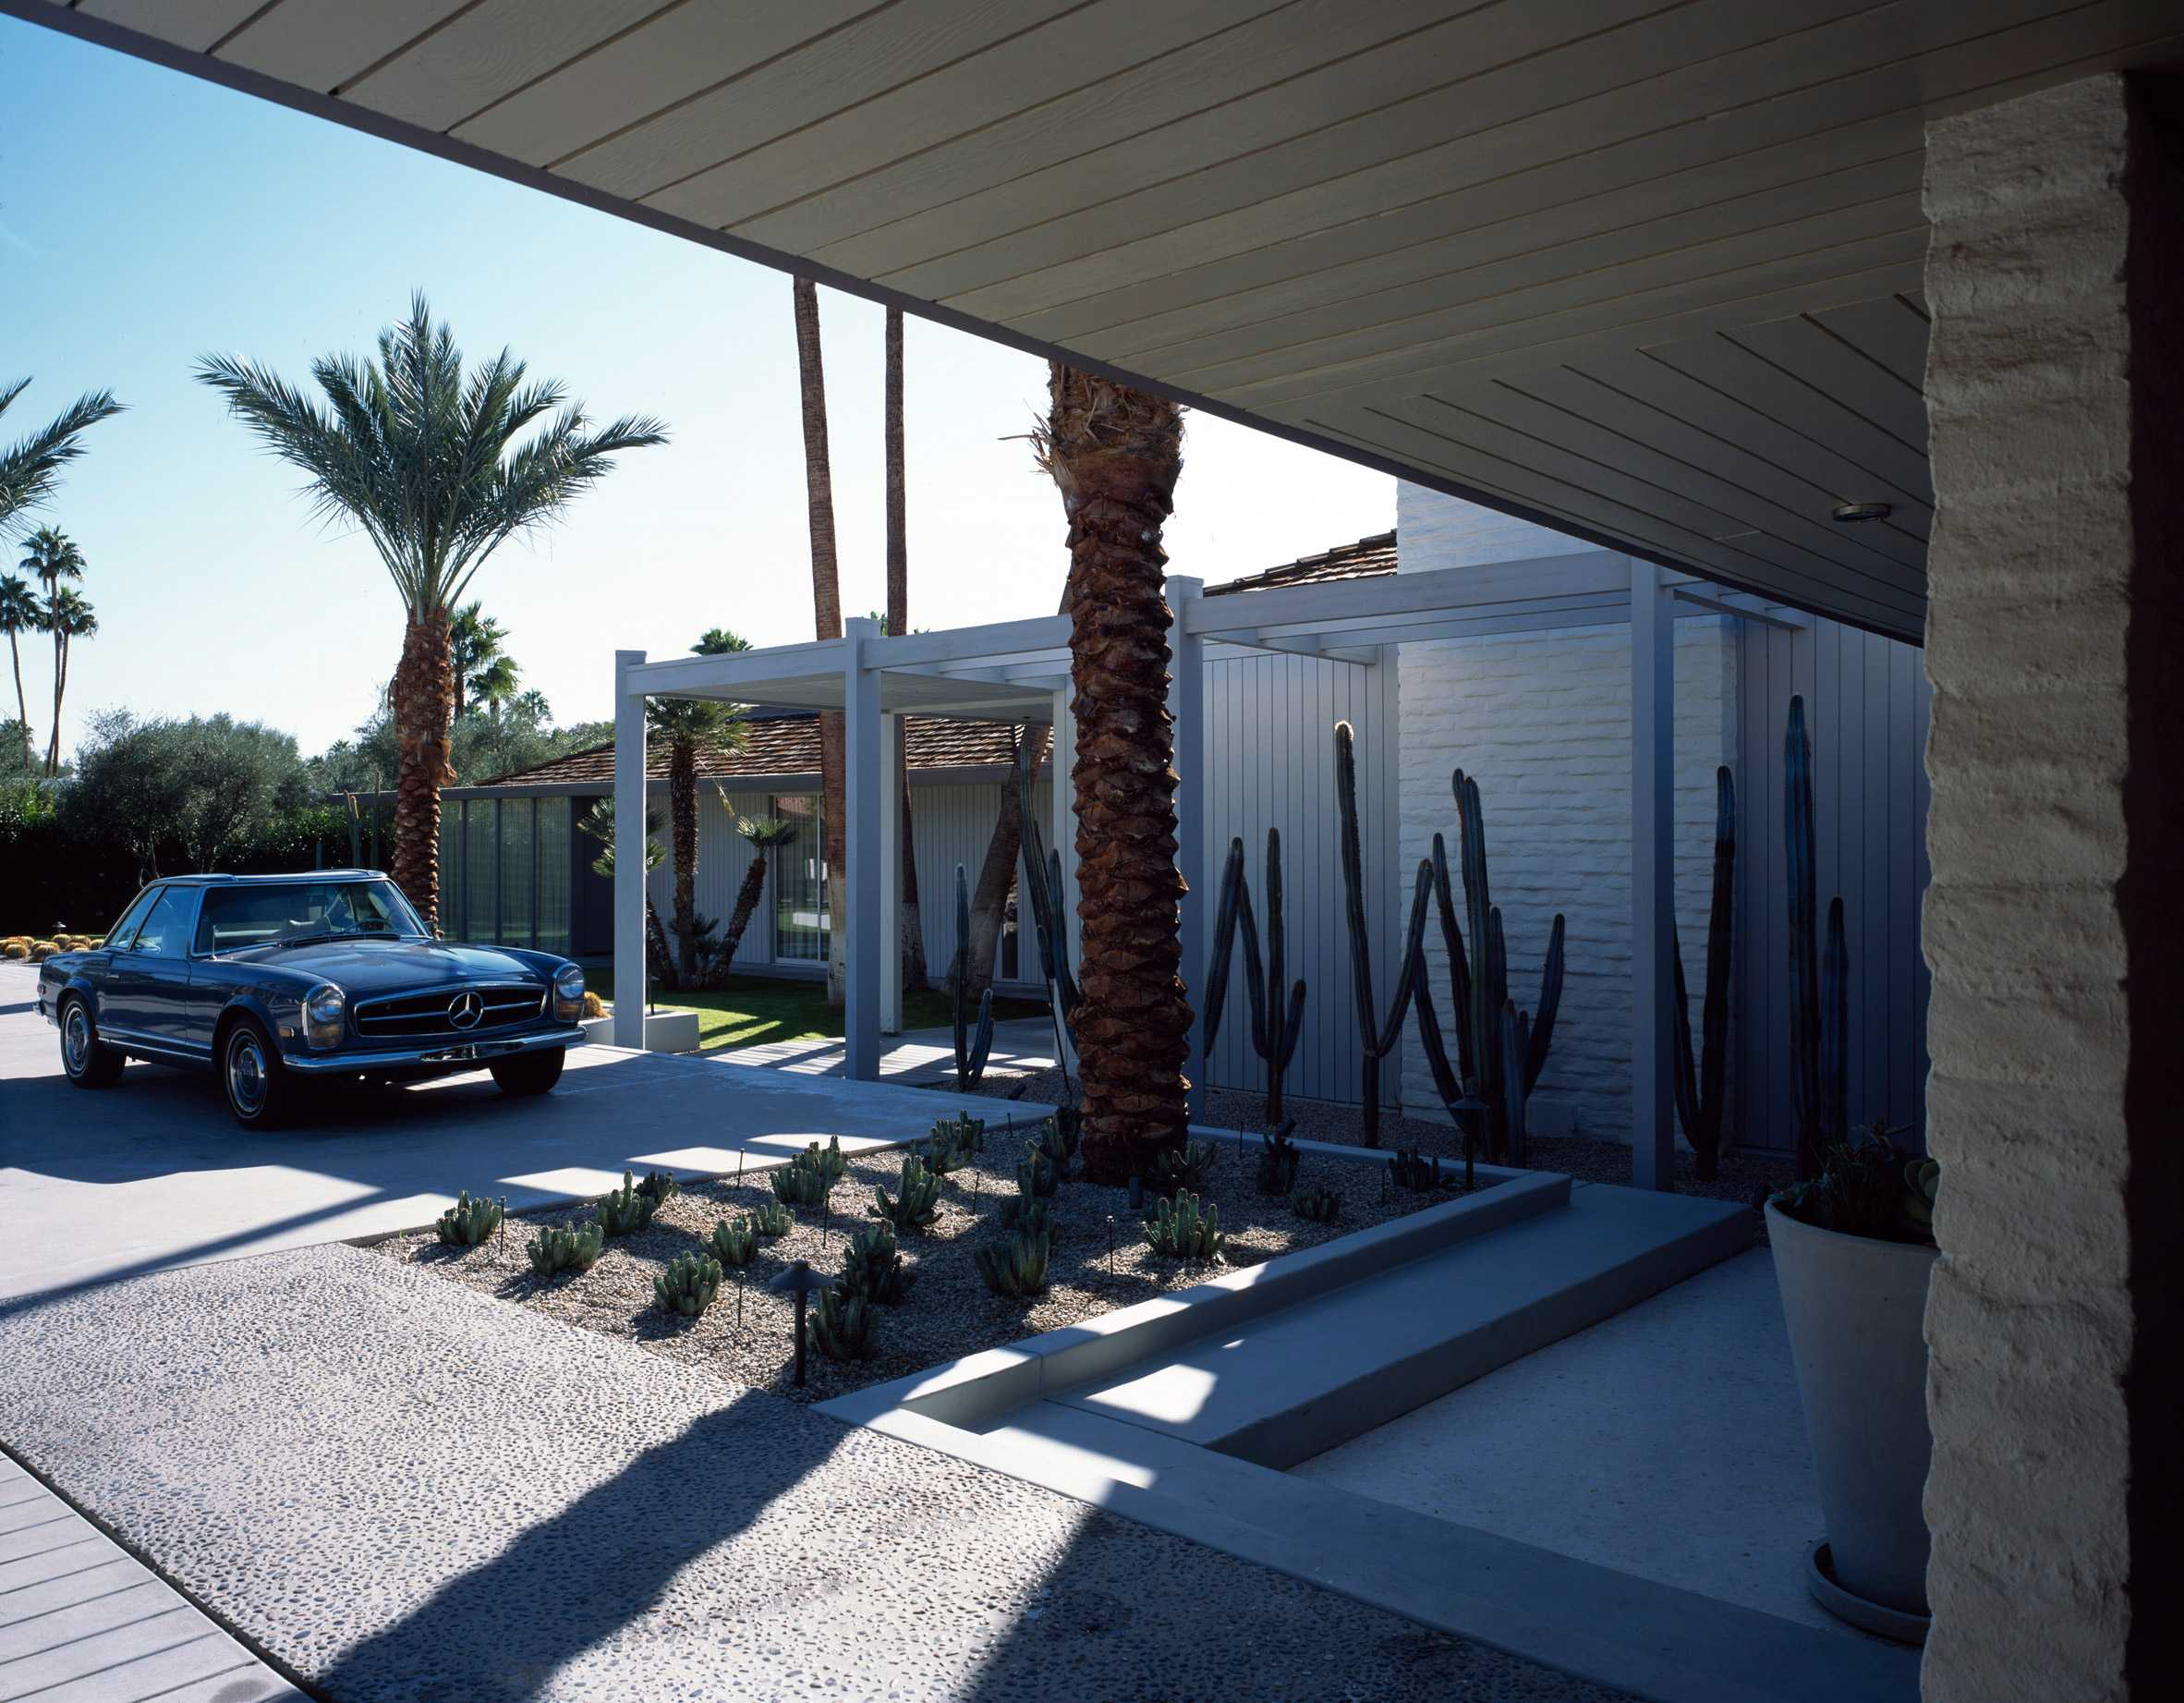 this-is-the-Abernathy-Residence-located-in-Palm-Springs-showing-a-car-parked-outside-surrounded-by-palm-trees-and-cactus